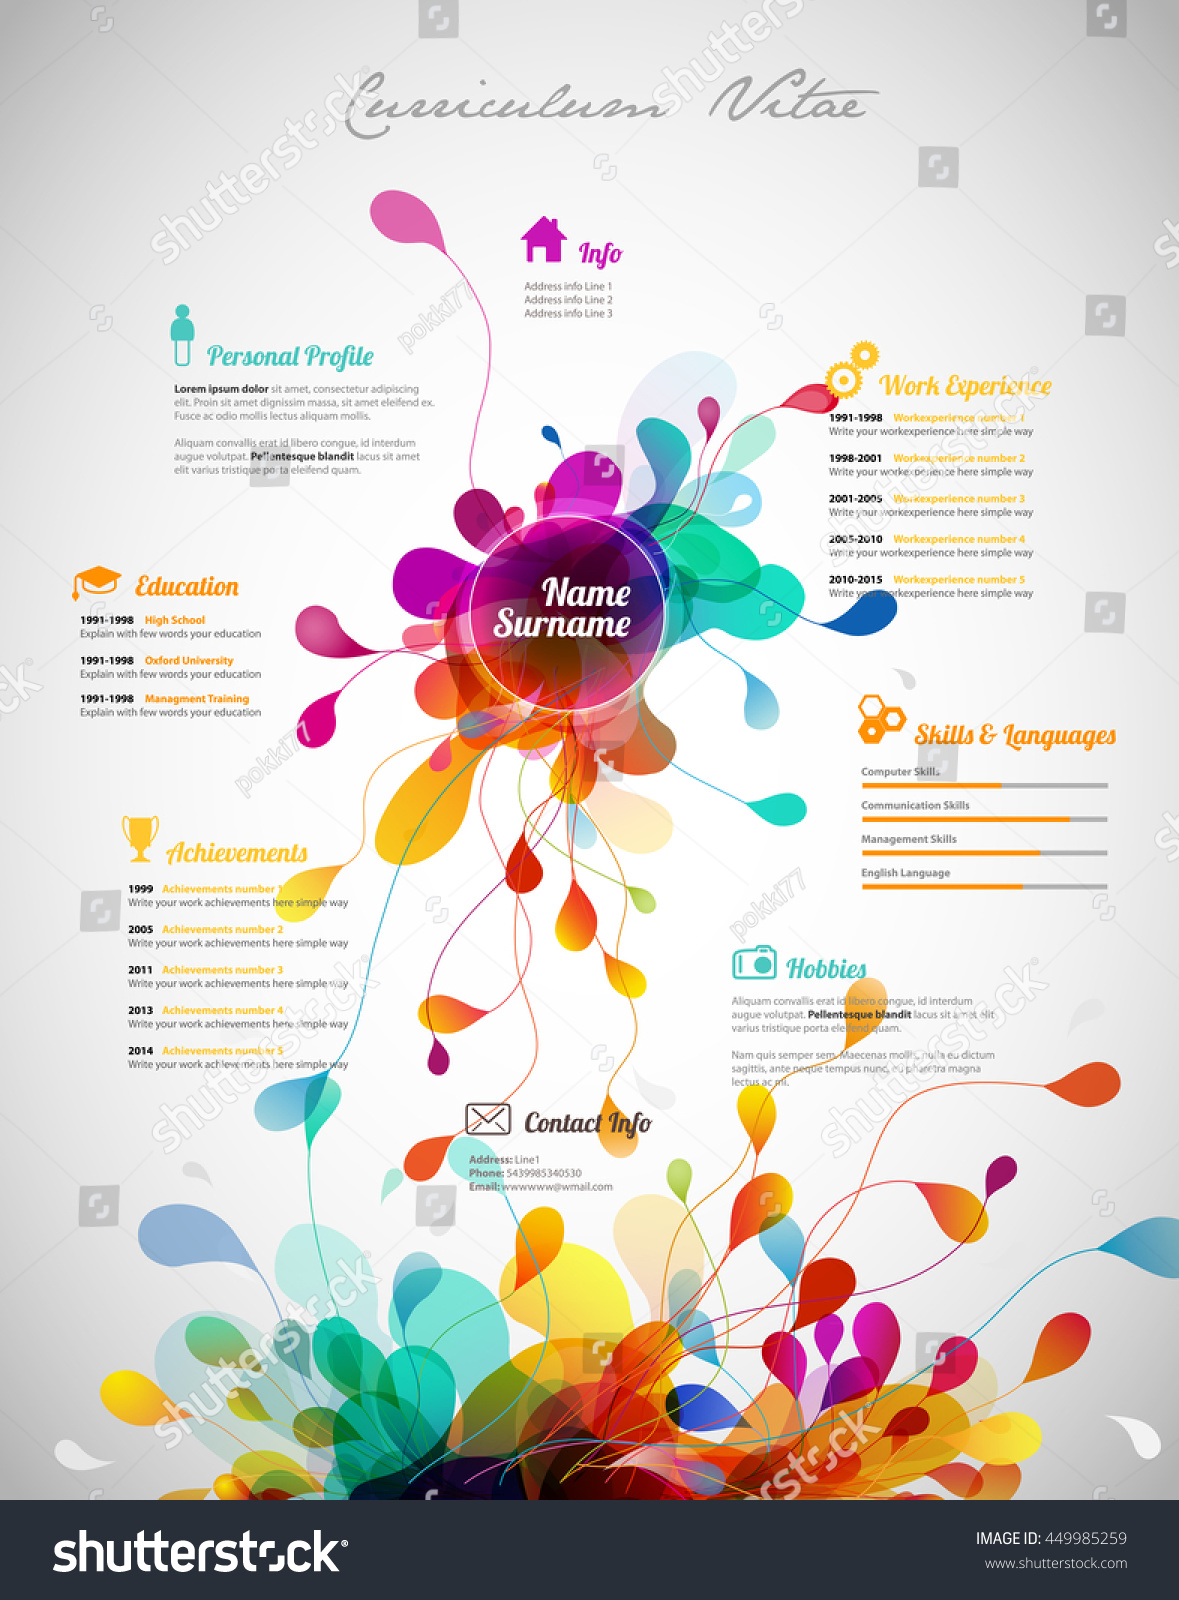 150 best cv images on pinterest clutter creative and creativity